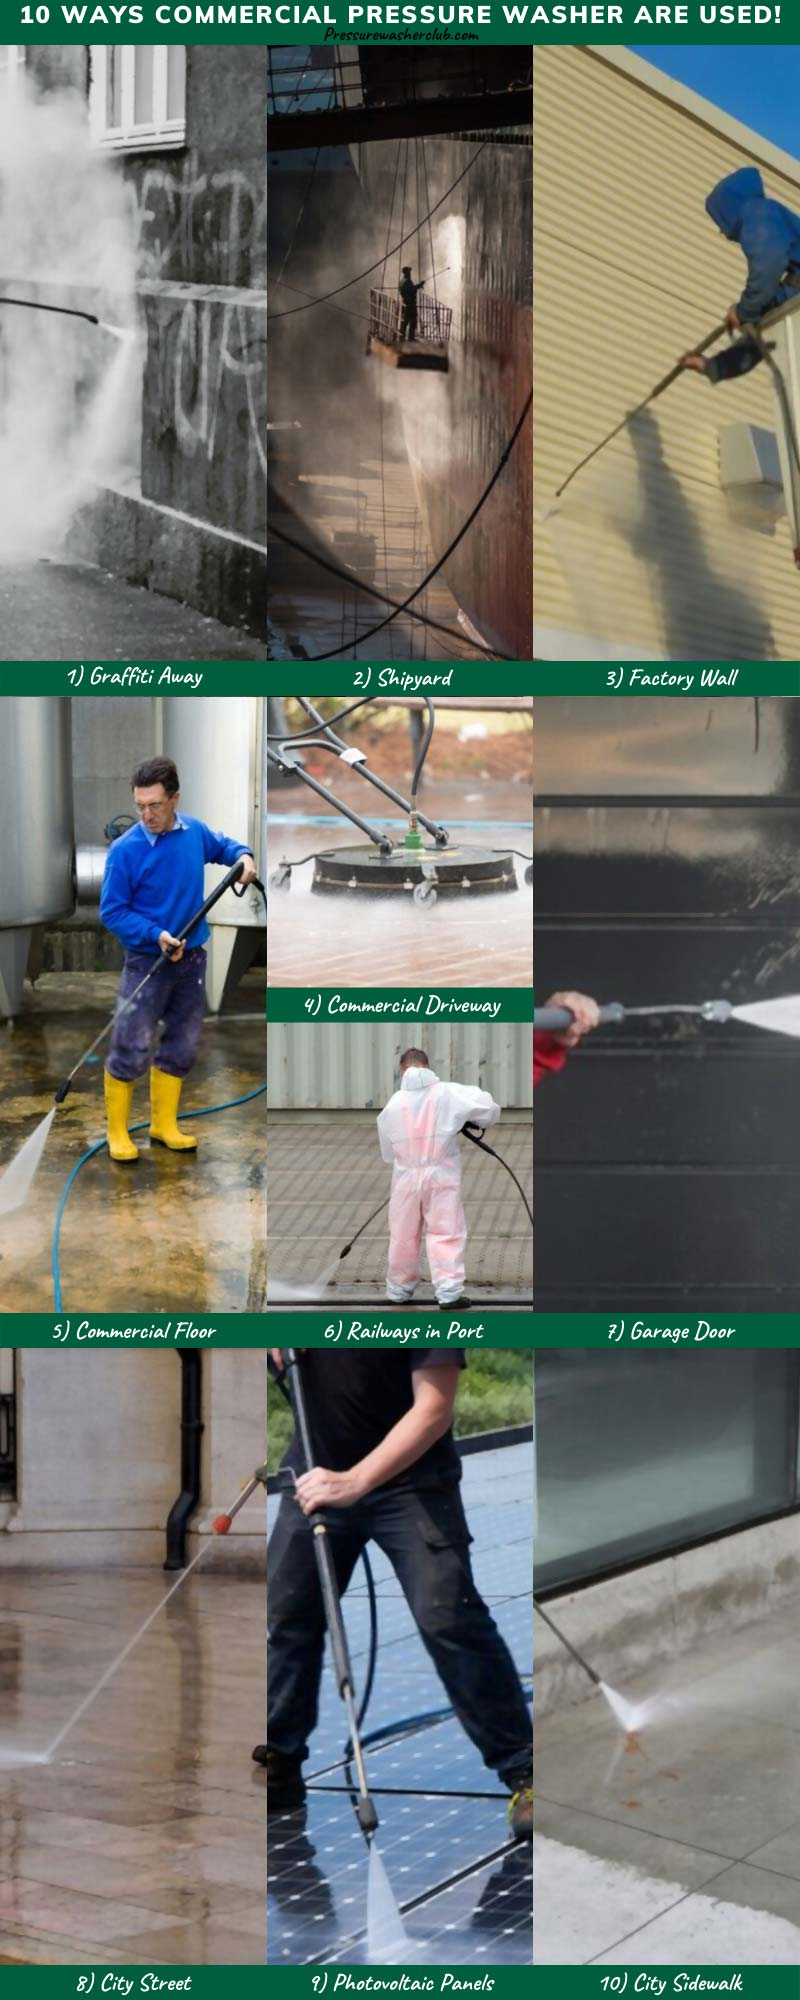 commercial pressure washer used